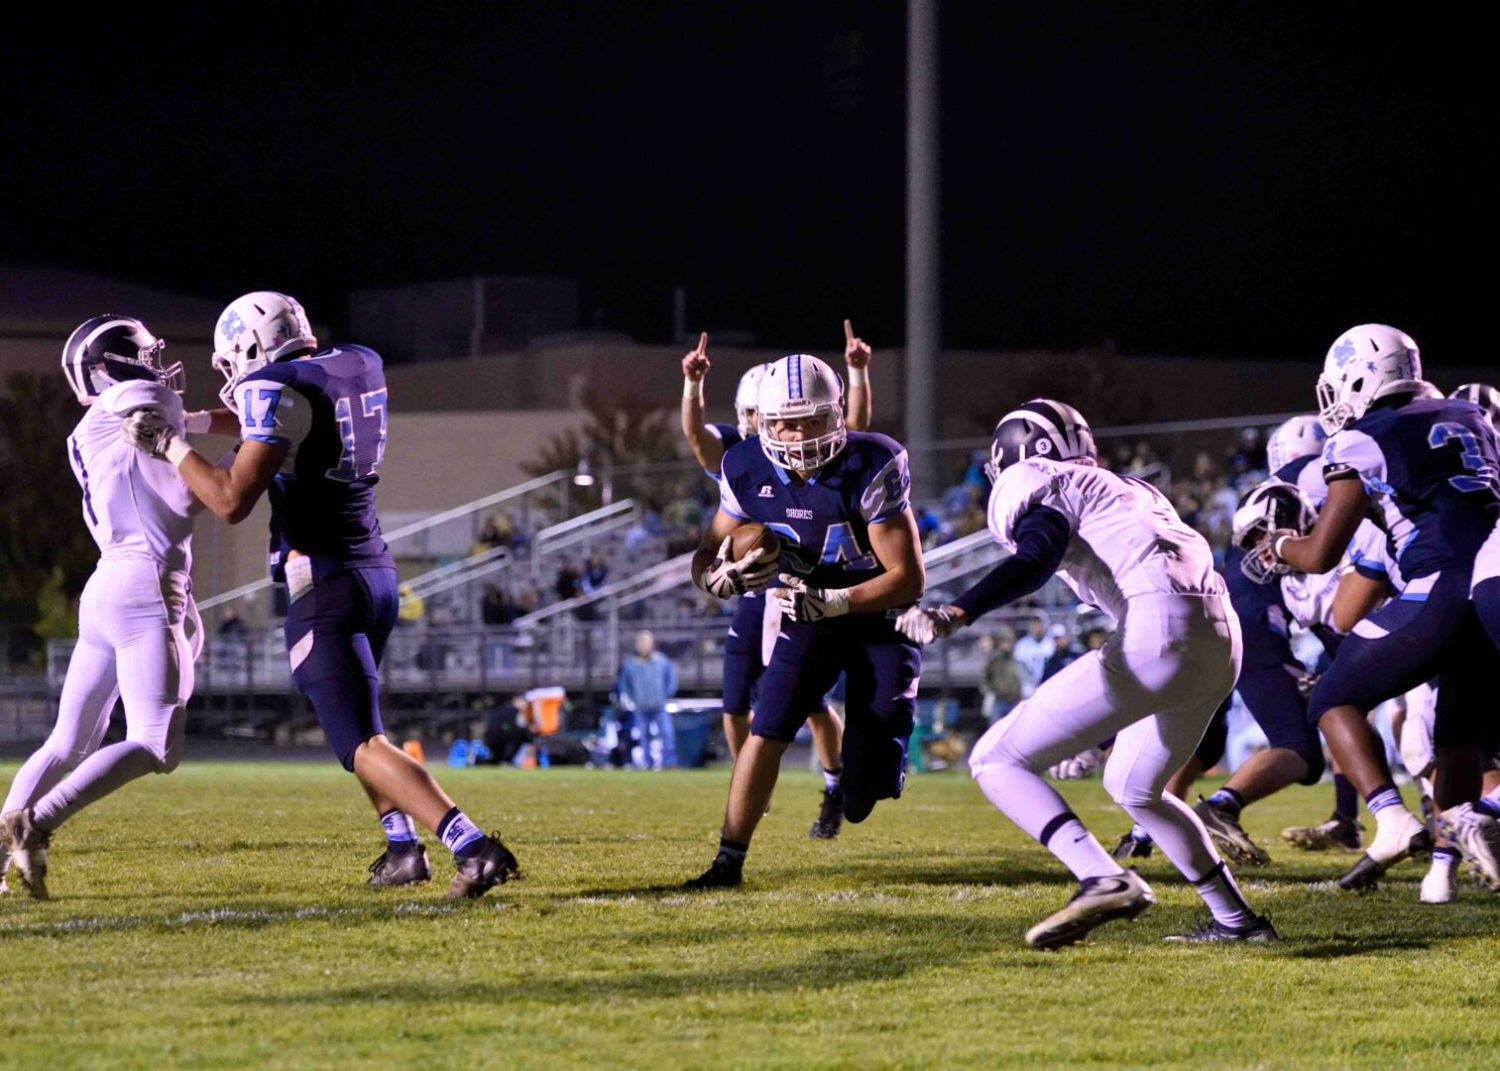 Mona Shores races past Fruitport 41-14, waits to see if it can sneak into the playoffs